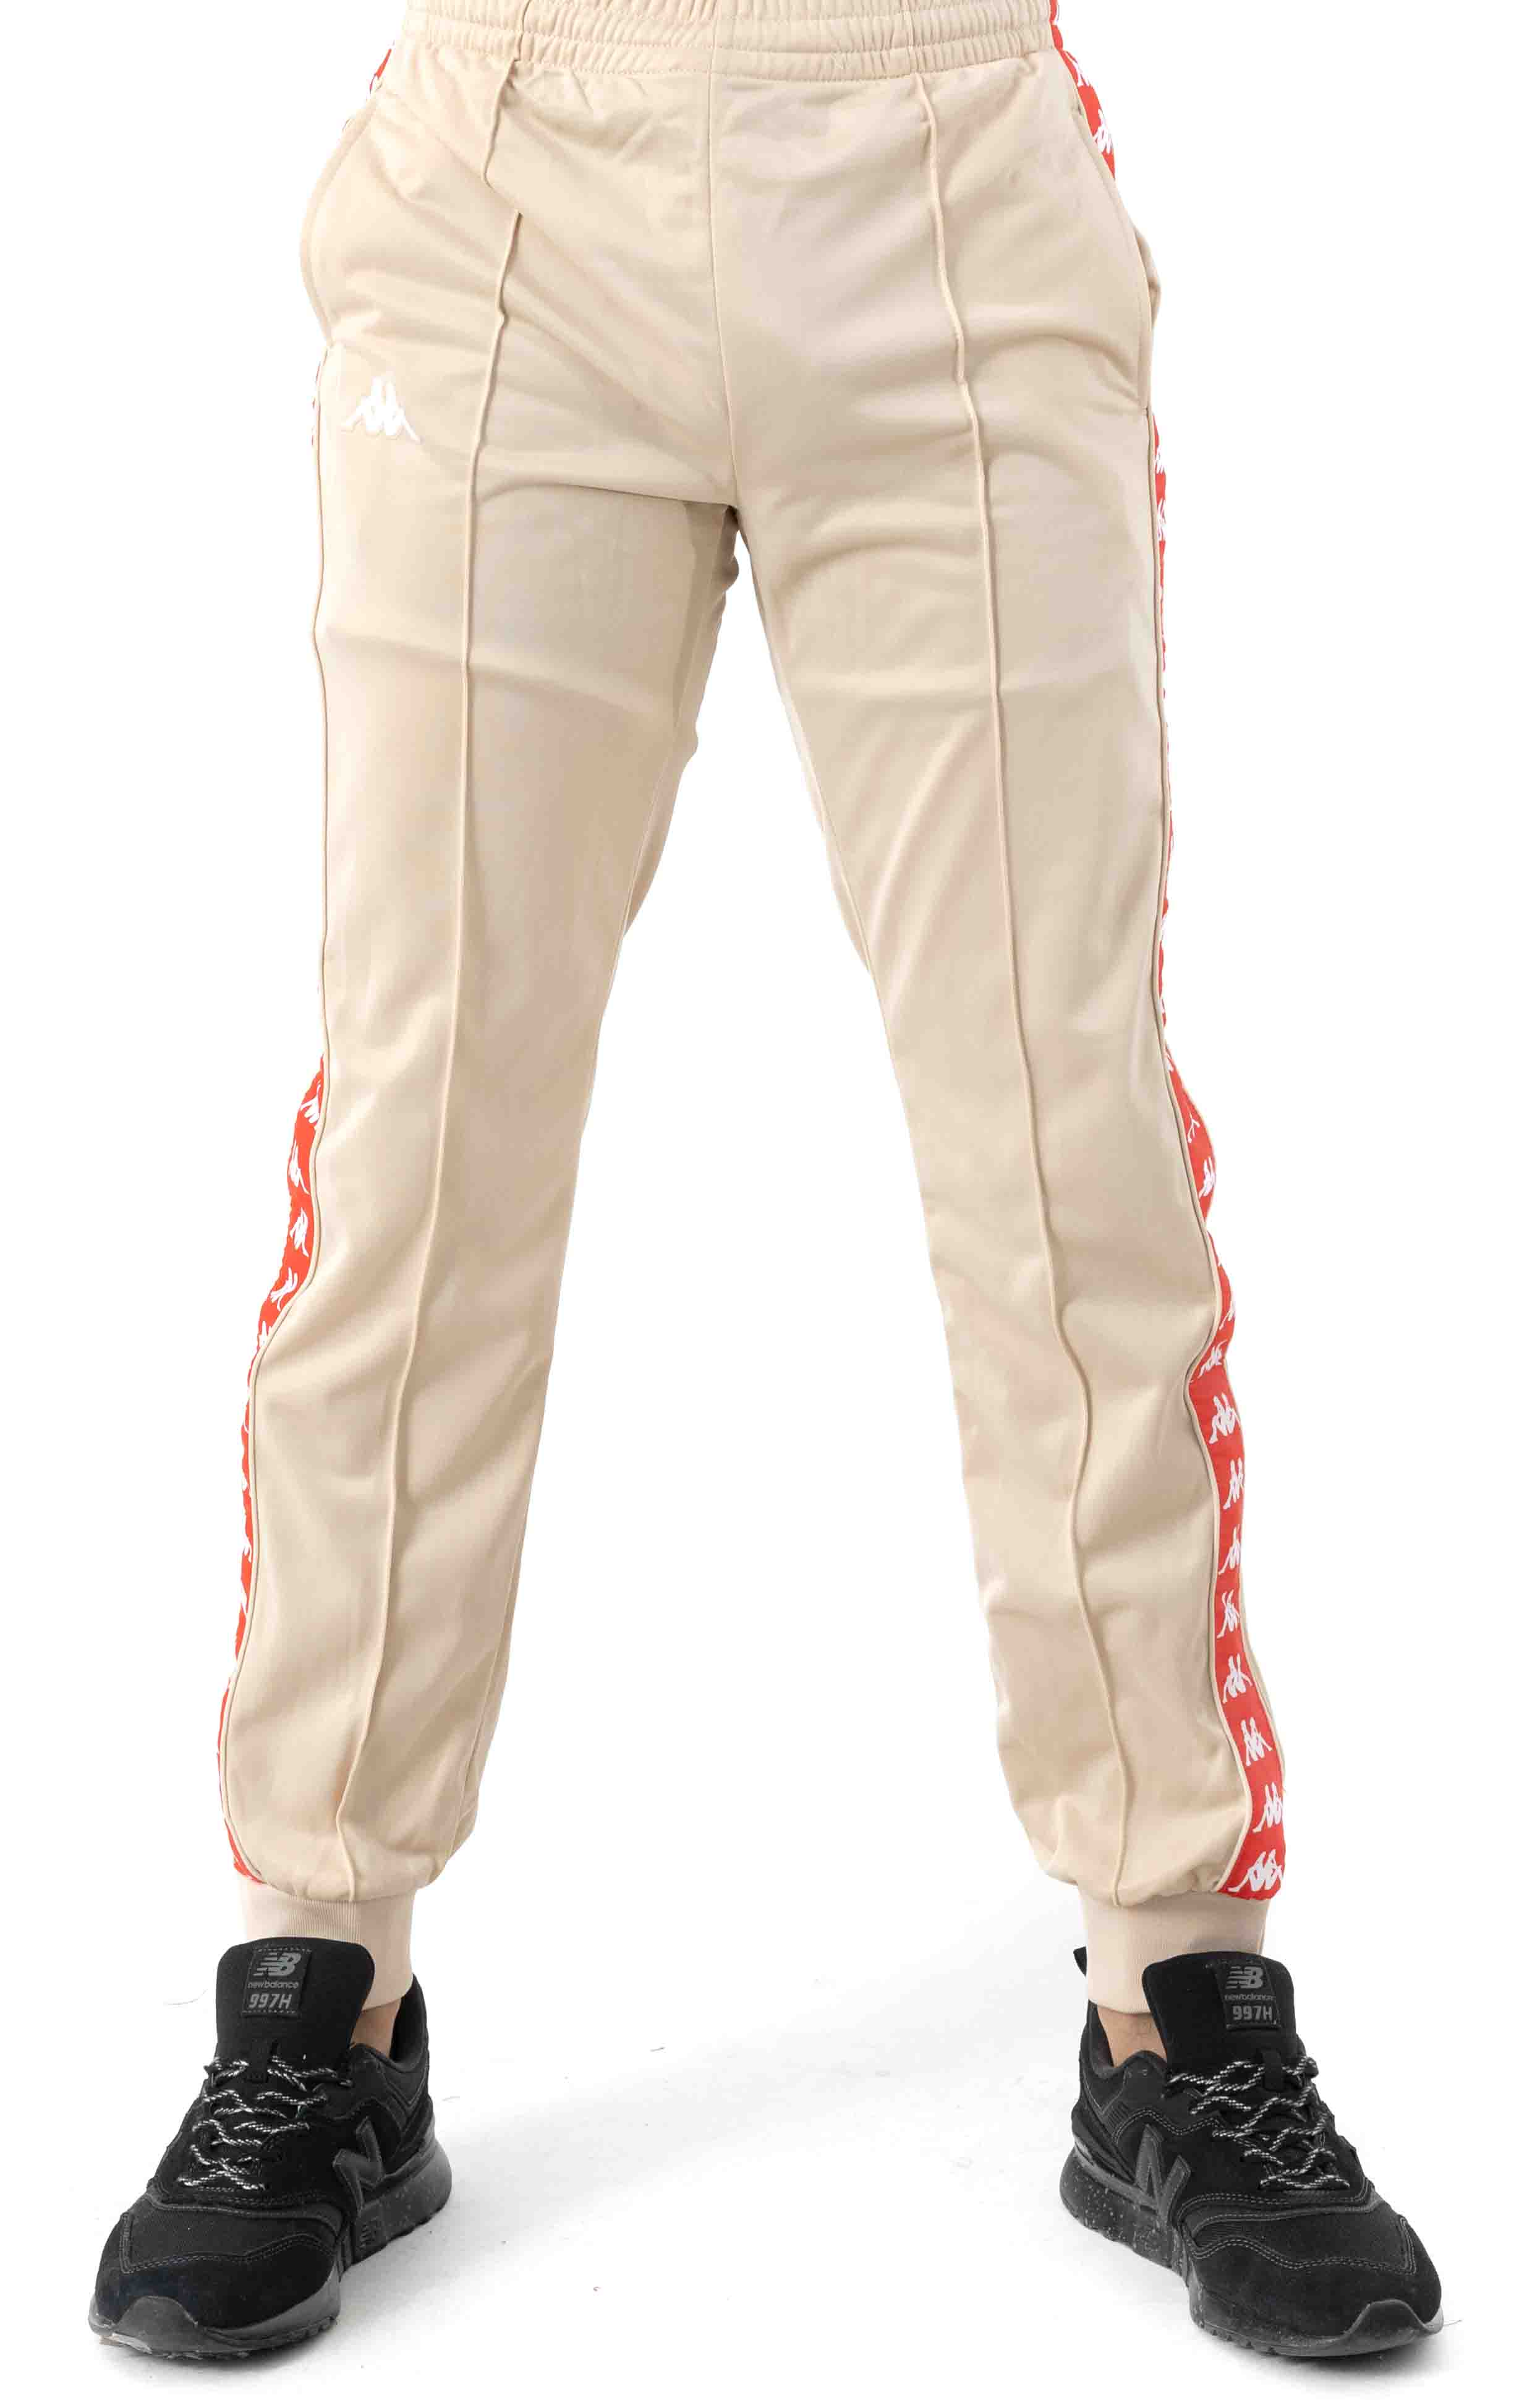 222 Banda Rastoriazz Trackpant - Beige/Red Flame 2